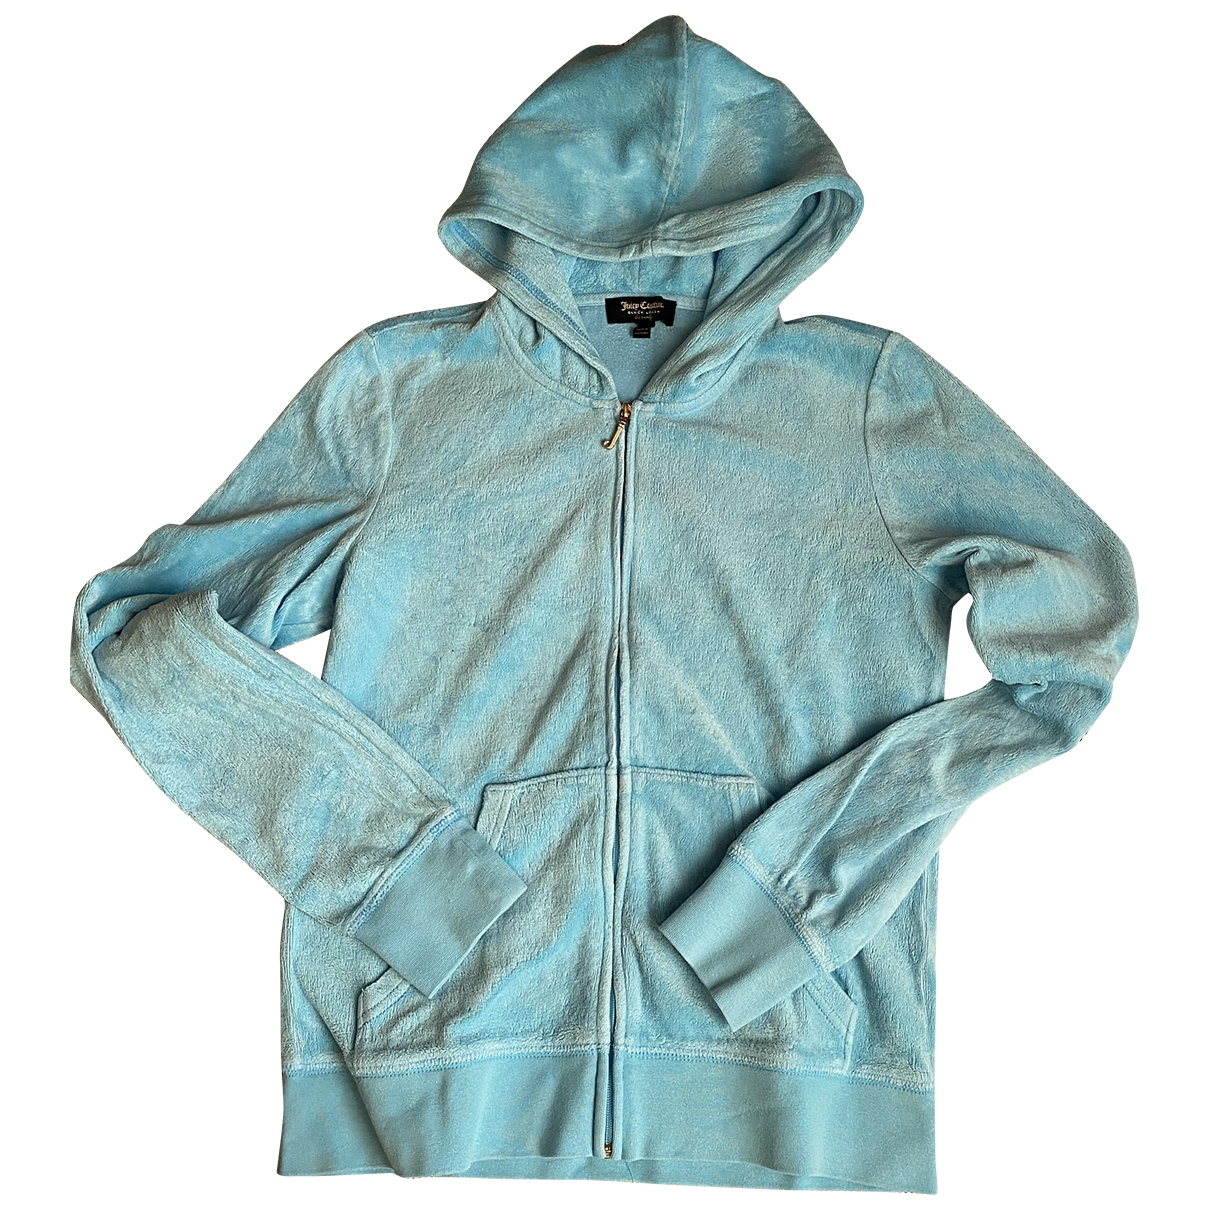 Juicy Couture \N Turquoise  top for Kids 16 years - M FR